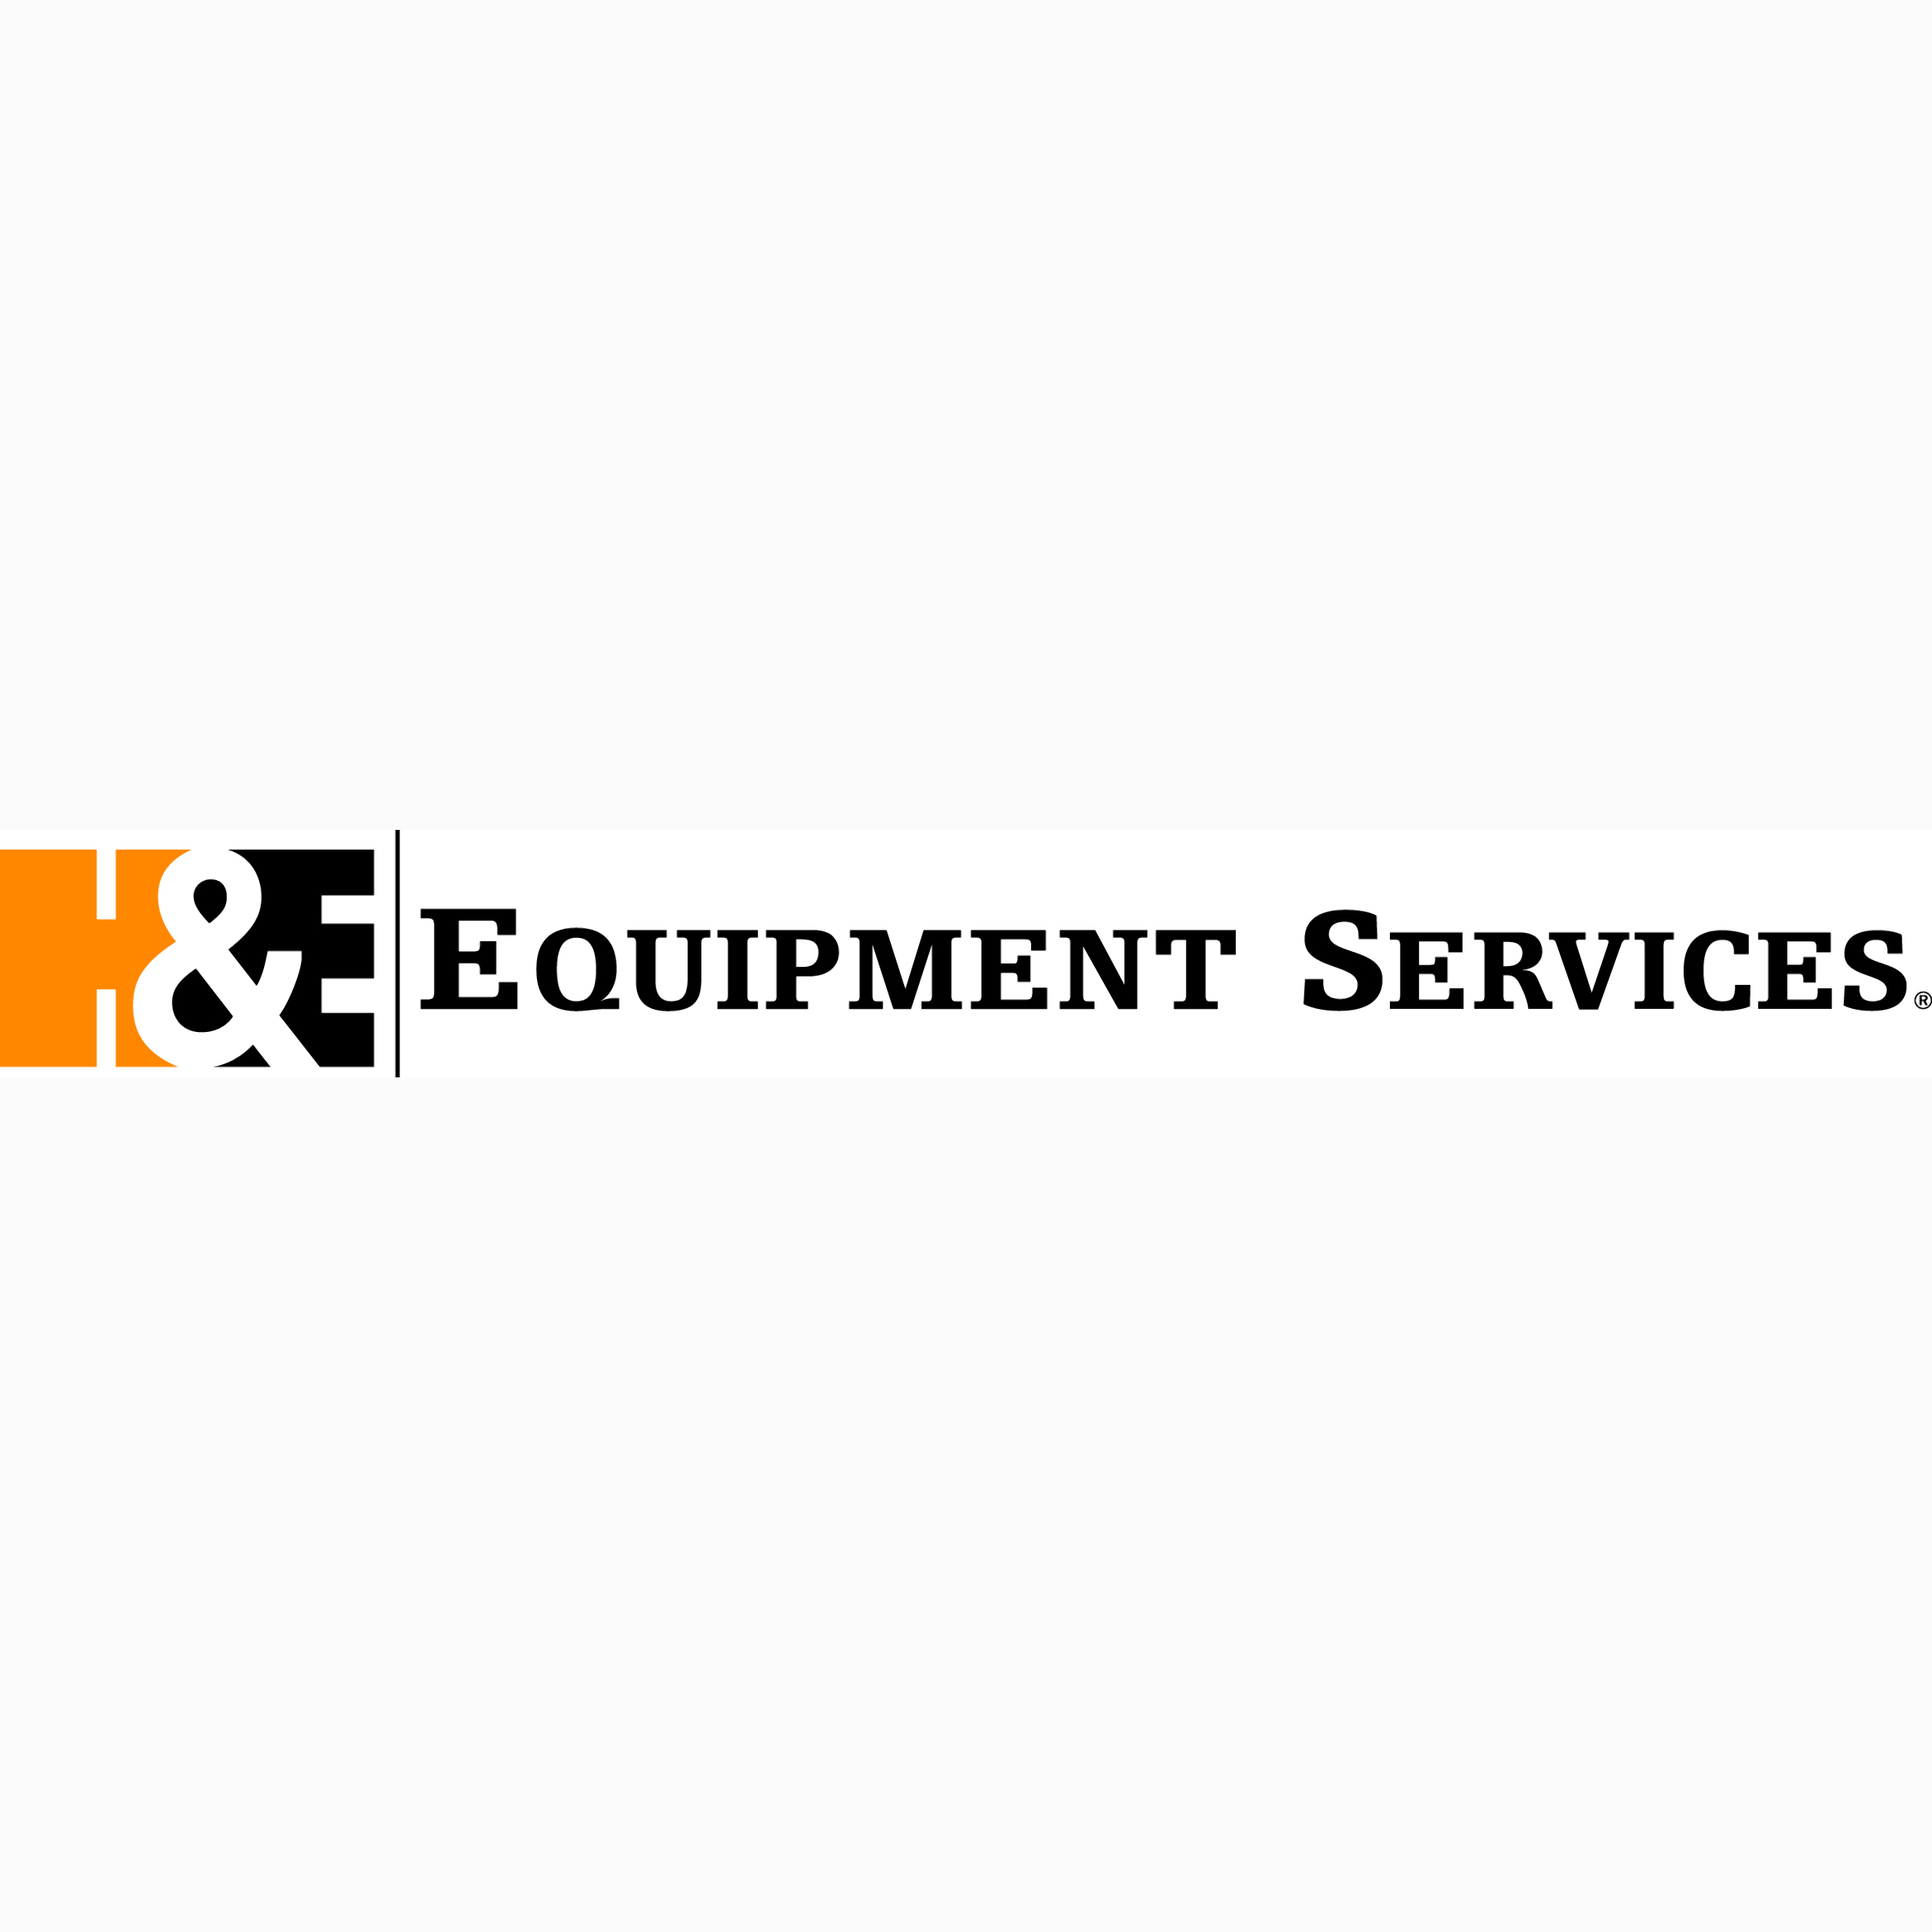 H&E Equipment Services copy